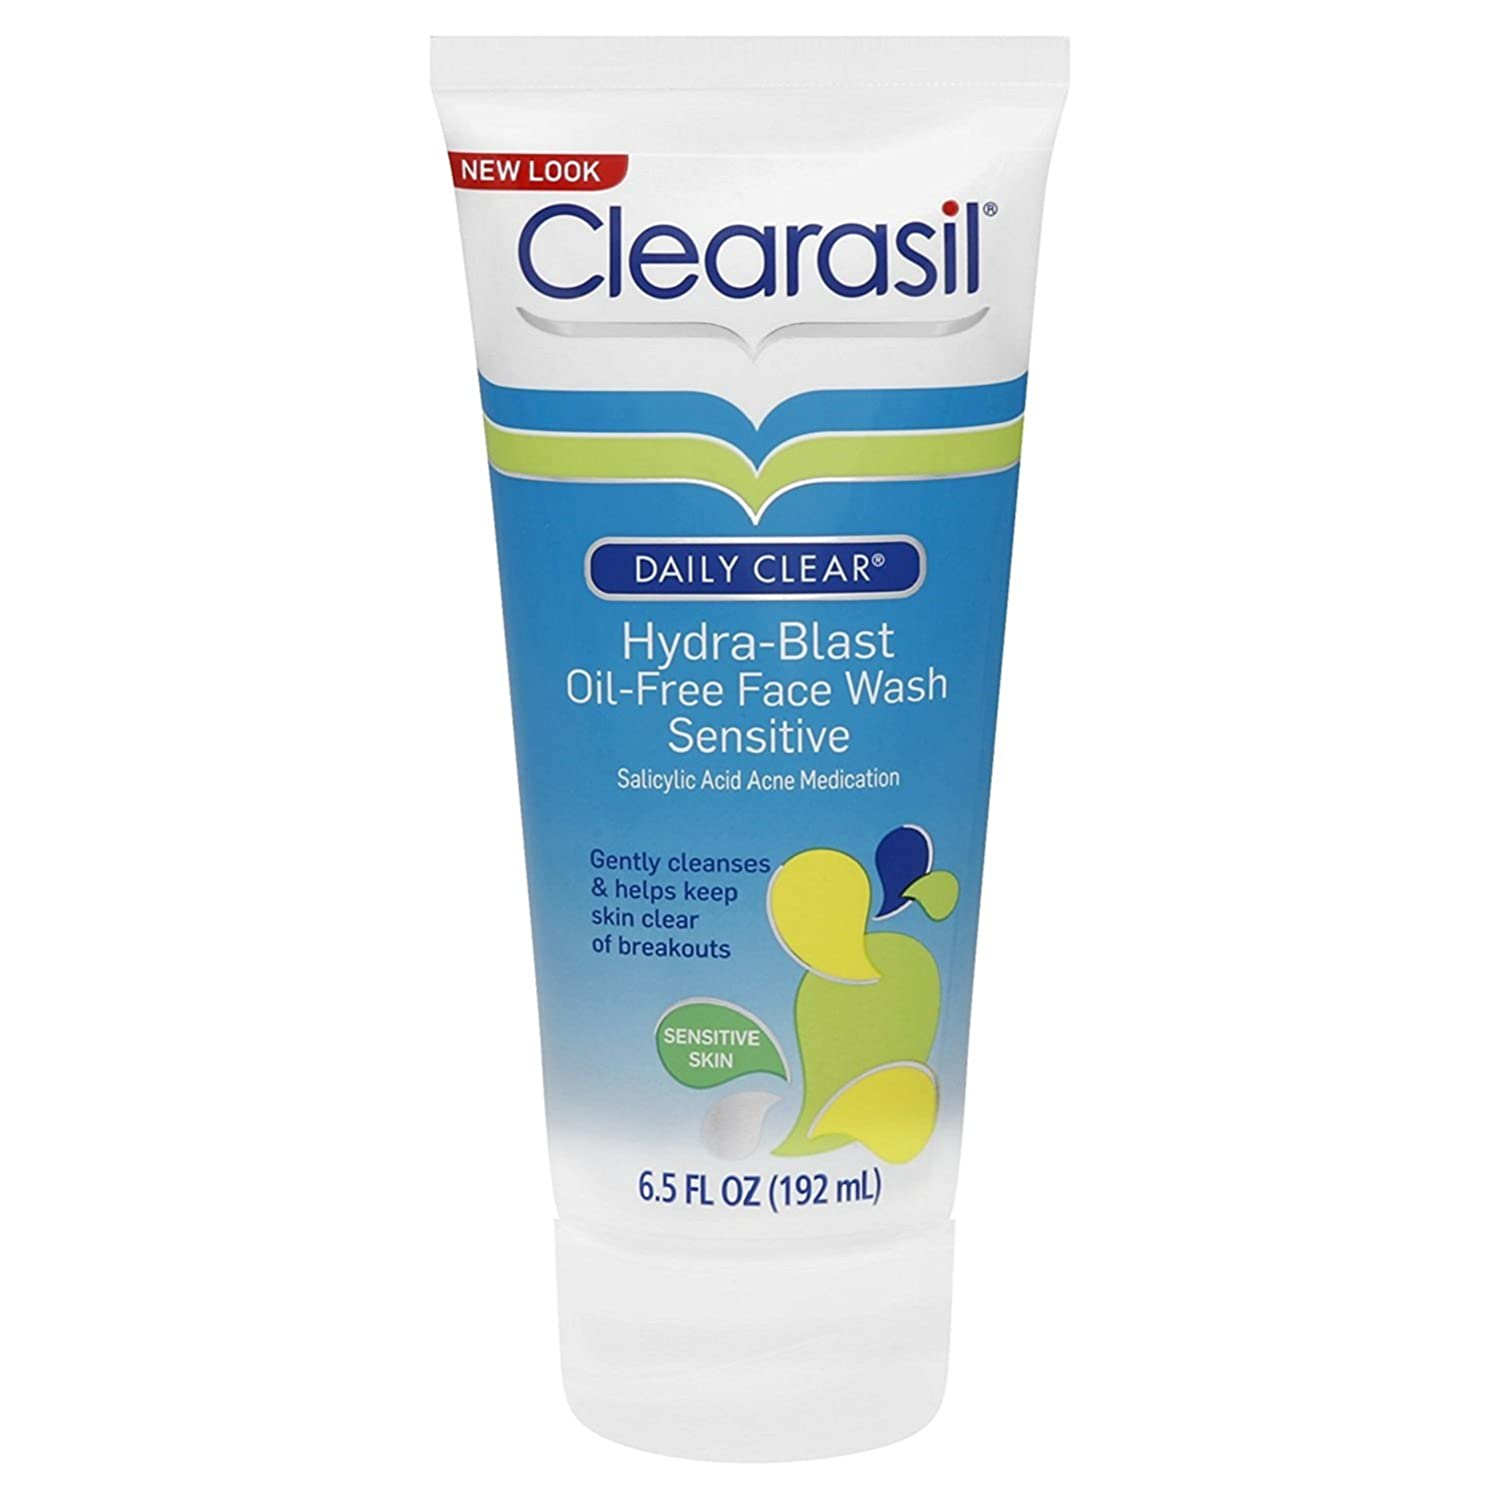 Facial cleanser for sensitive skin acne